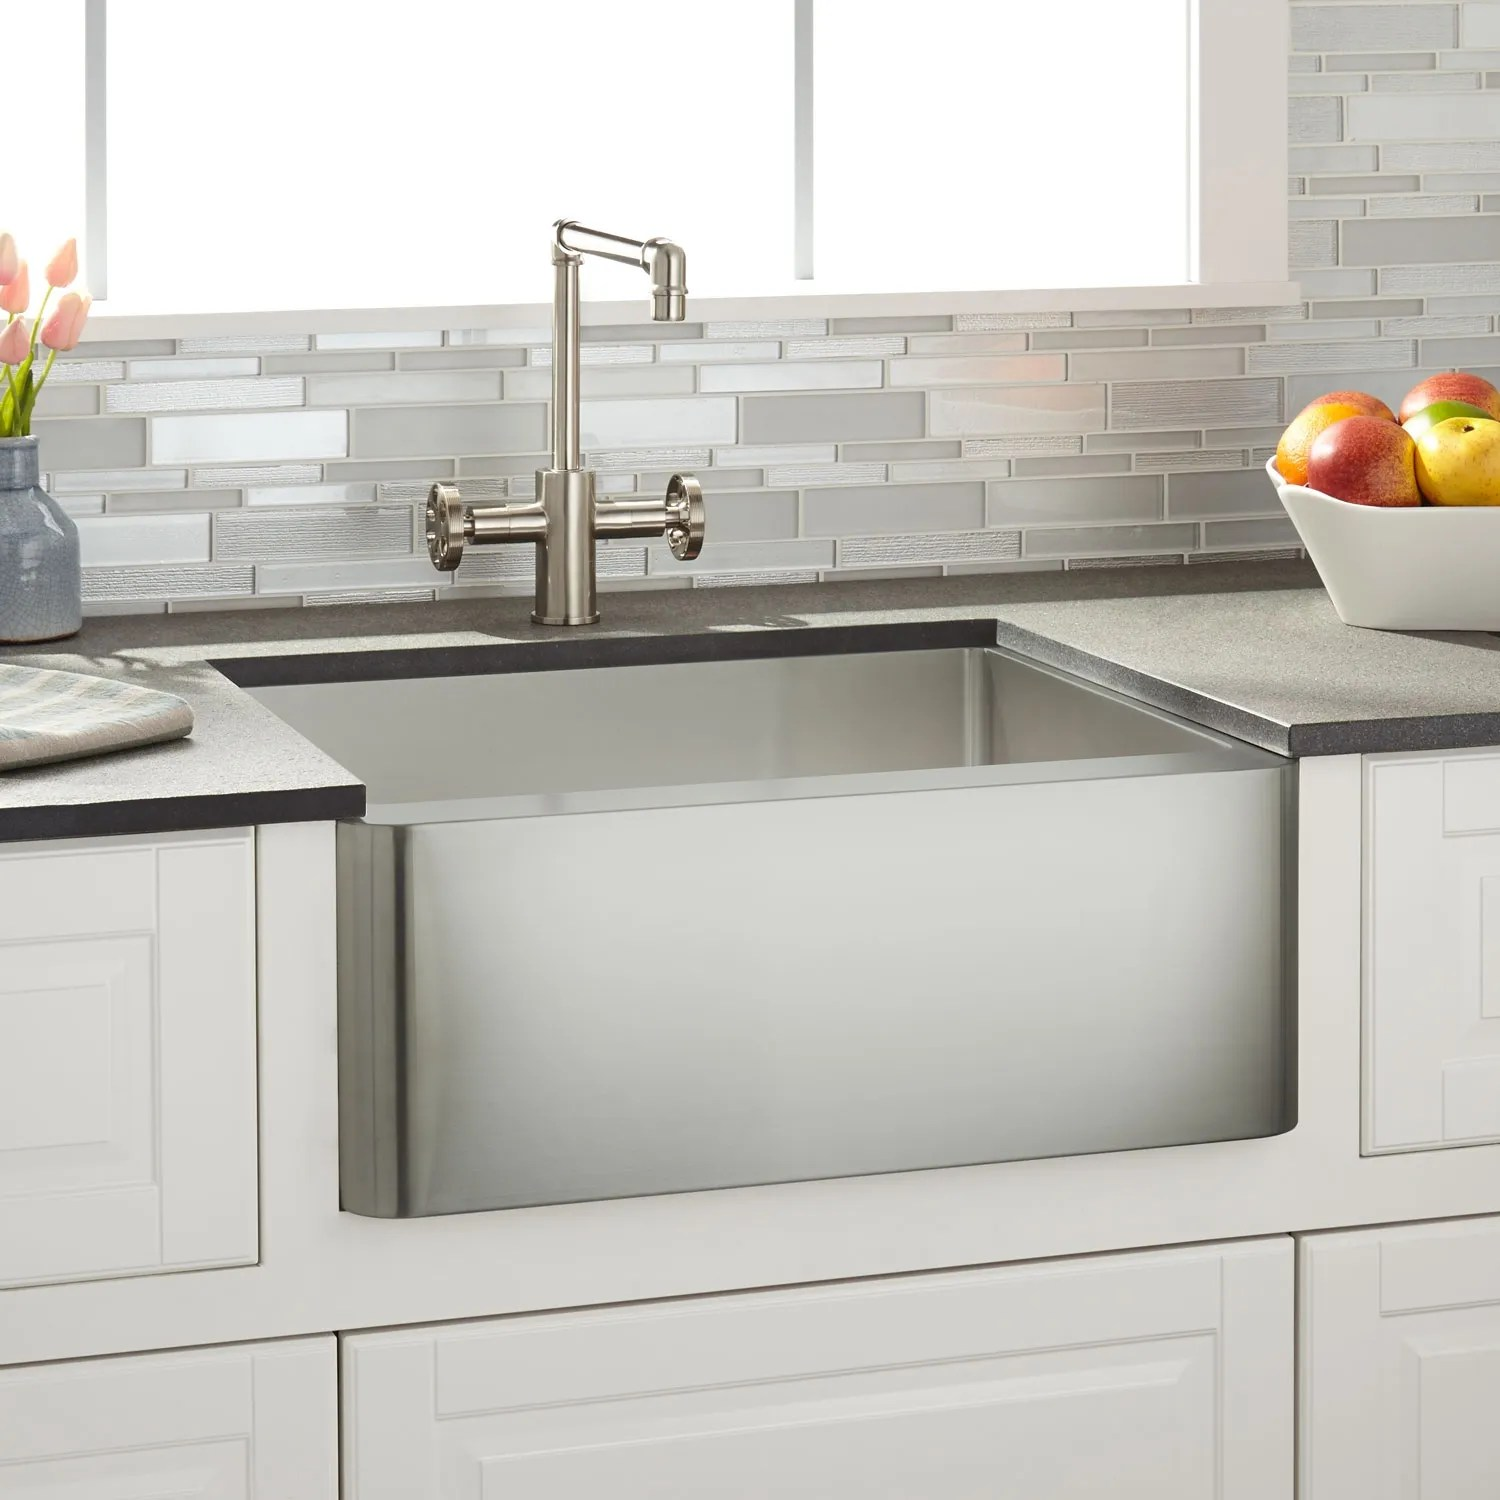 24 inch kitchen sink used kitchens for sale farmhouse signature hardware hazelton stainless steel